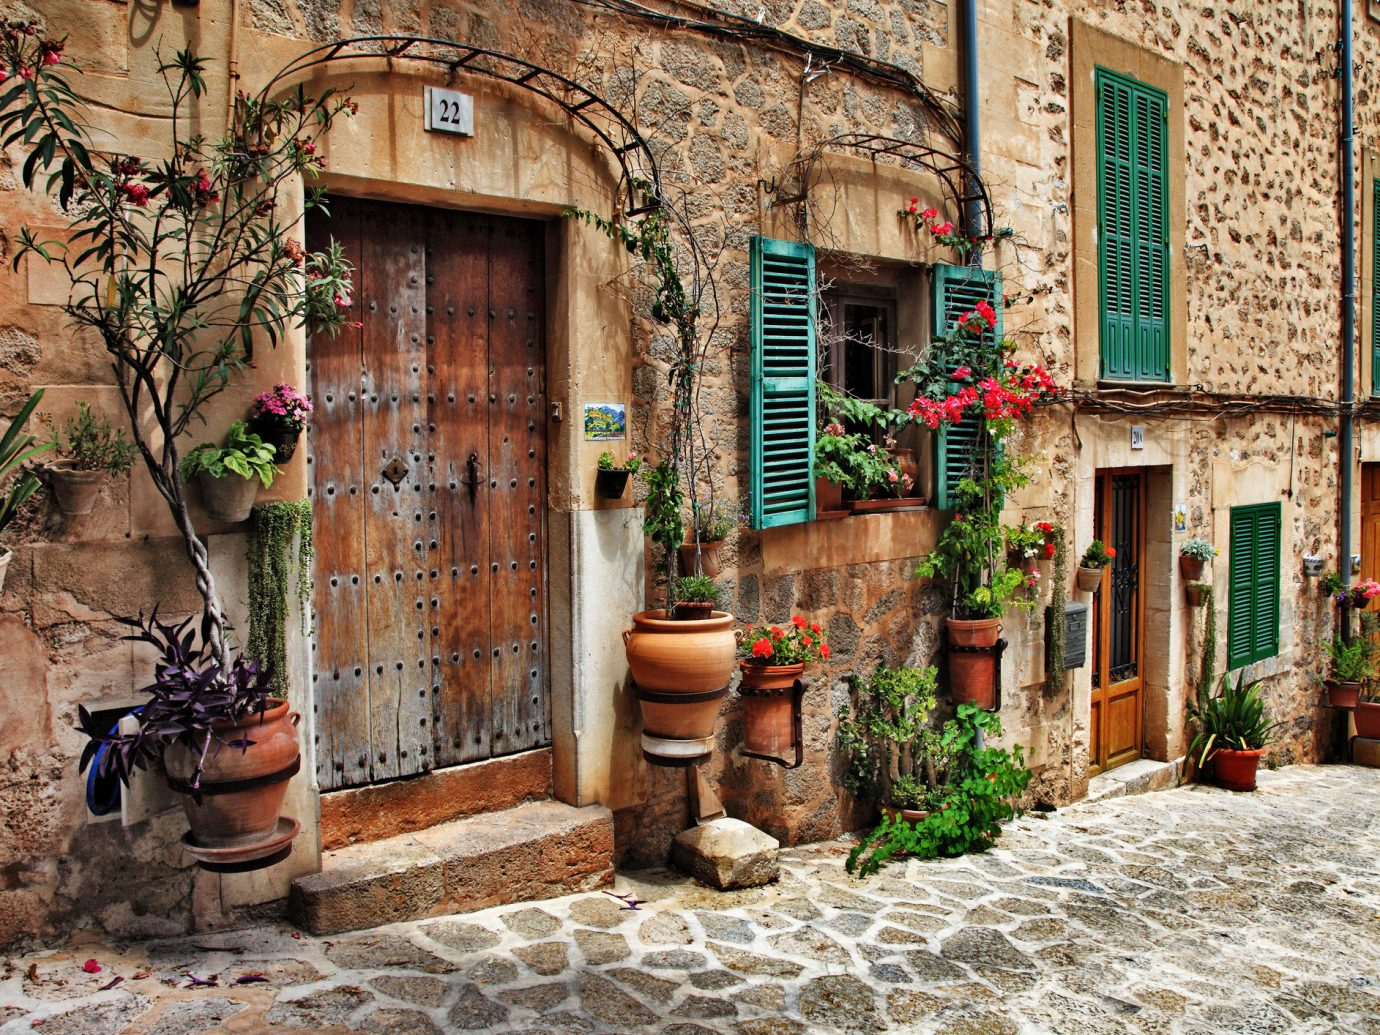 Offbeat building outdoor Town road house neighbourhood alley street wall urban area stone Village Courtyard home estate infrastructure ancient history yard cottage old way sidewalk